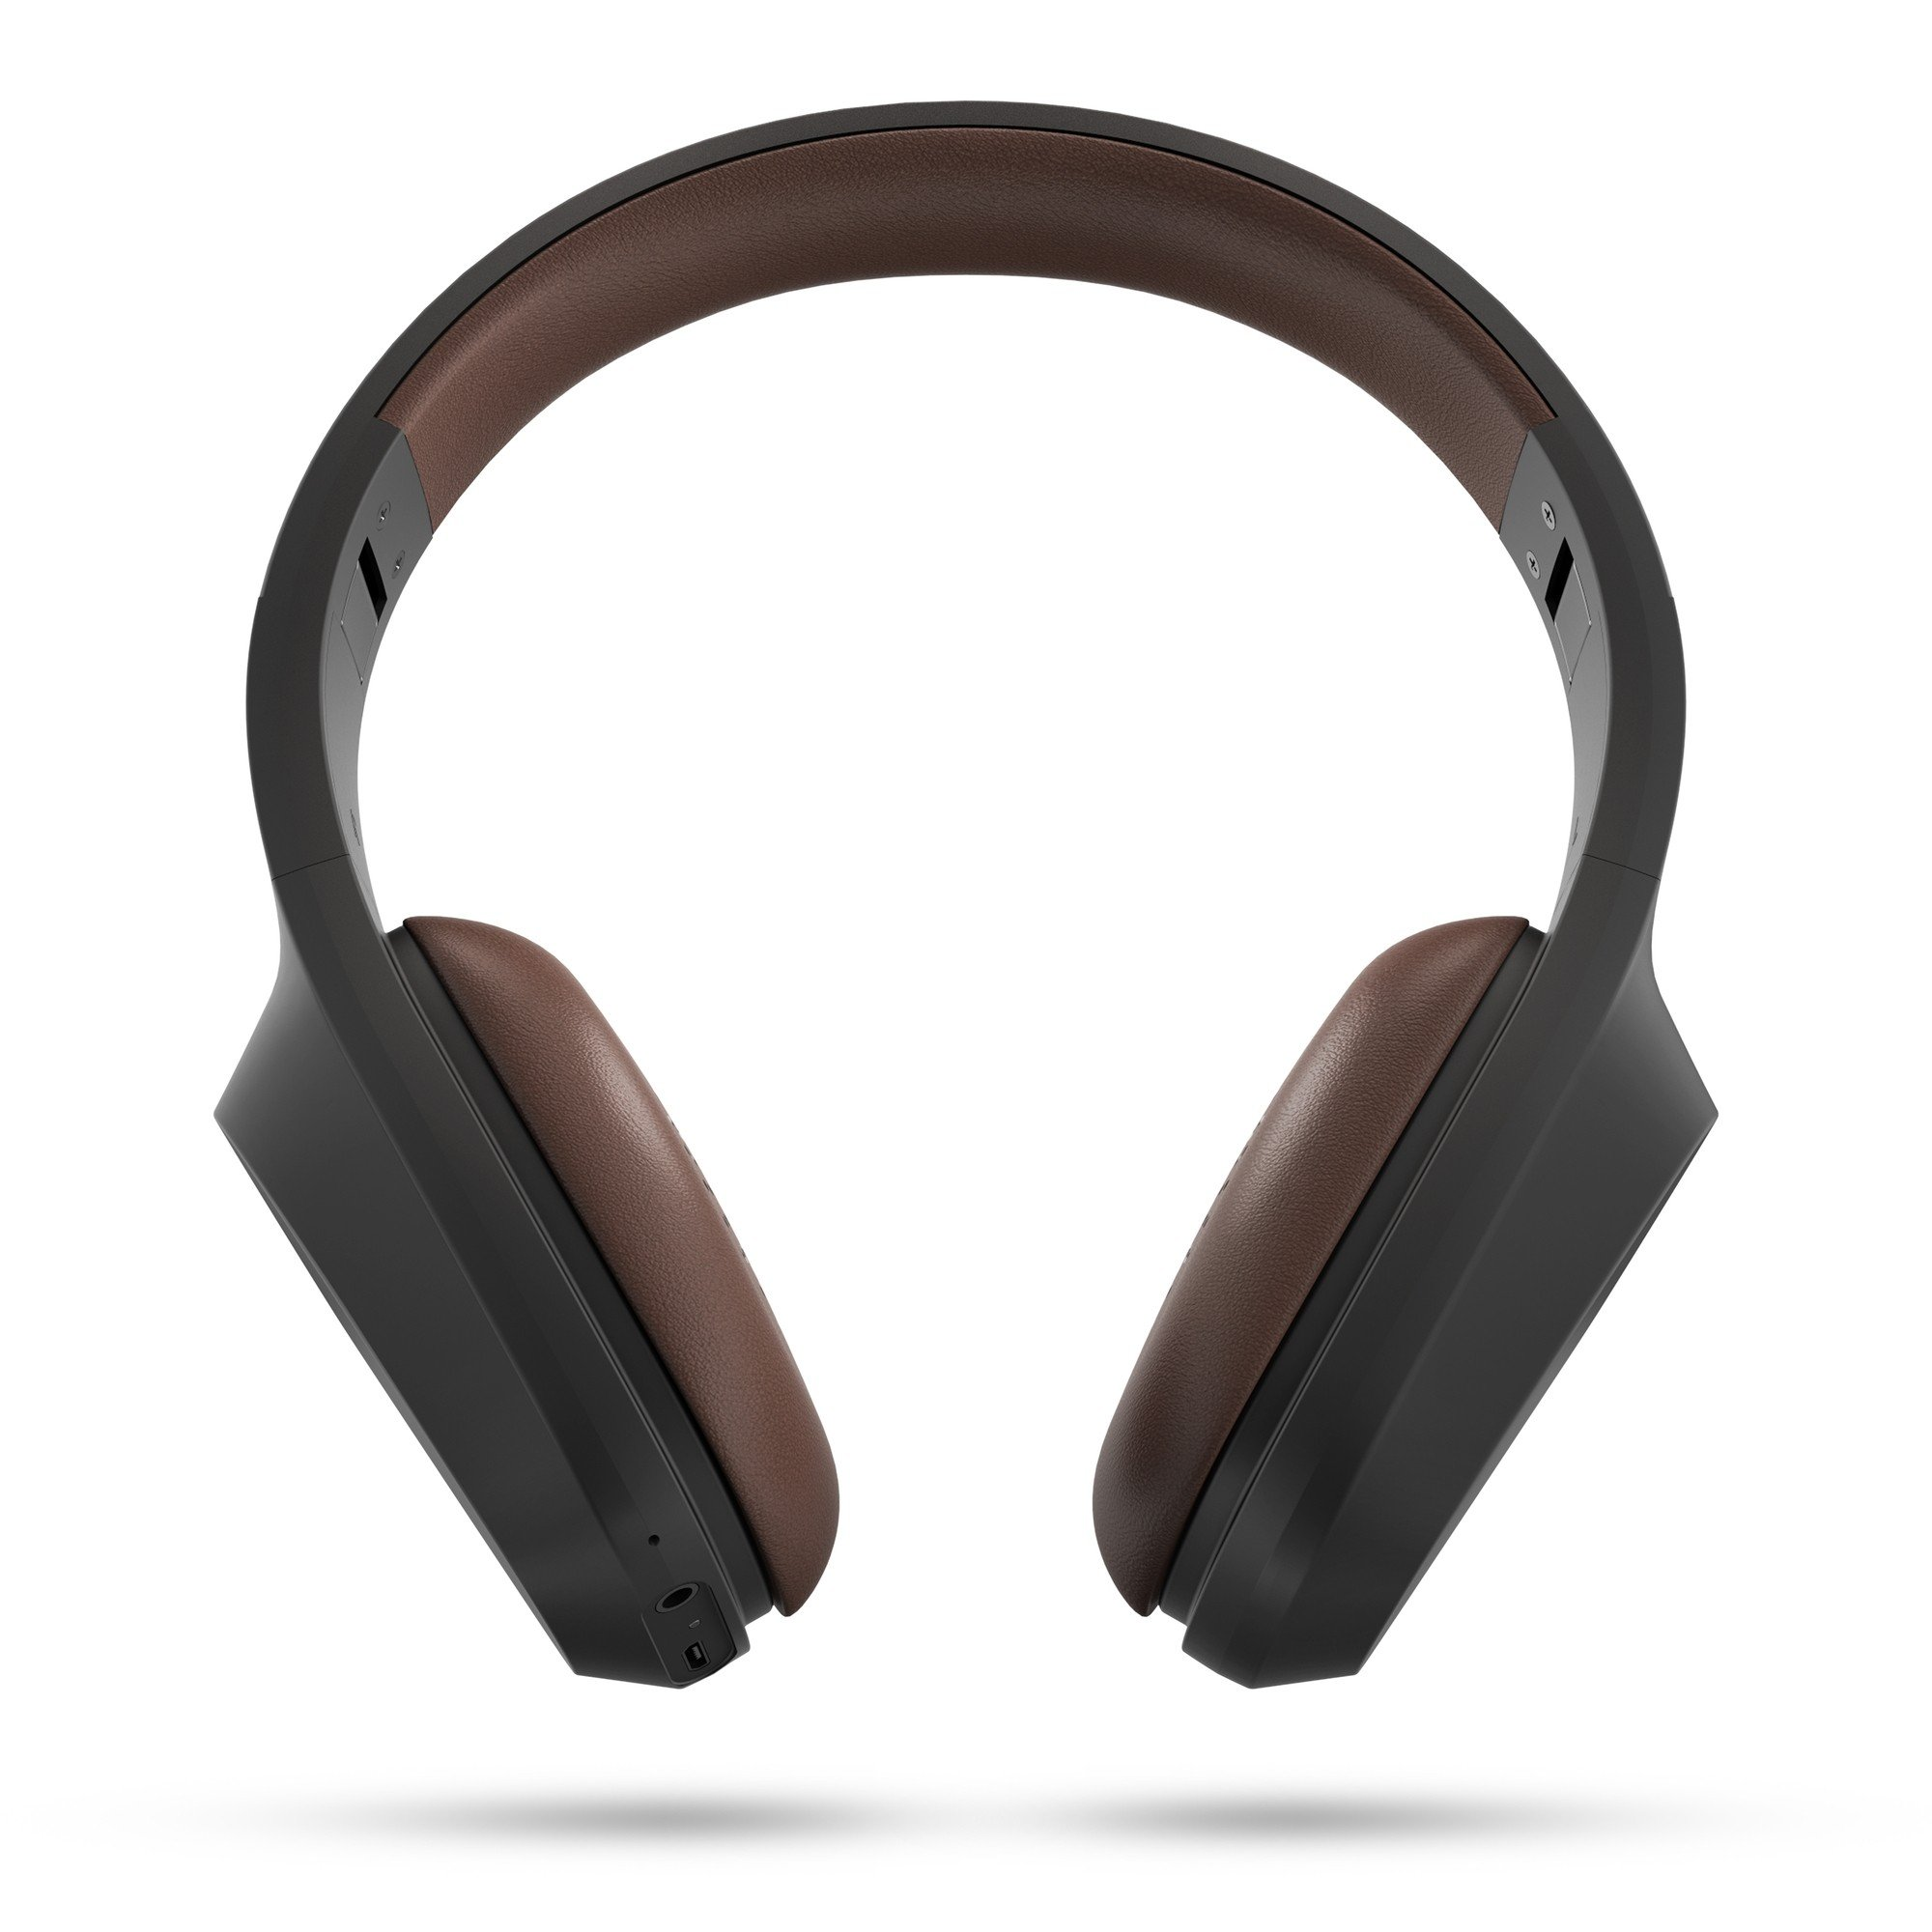 Auriculares Bluetooth Energy Sistem Headphones 7 Madera